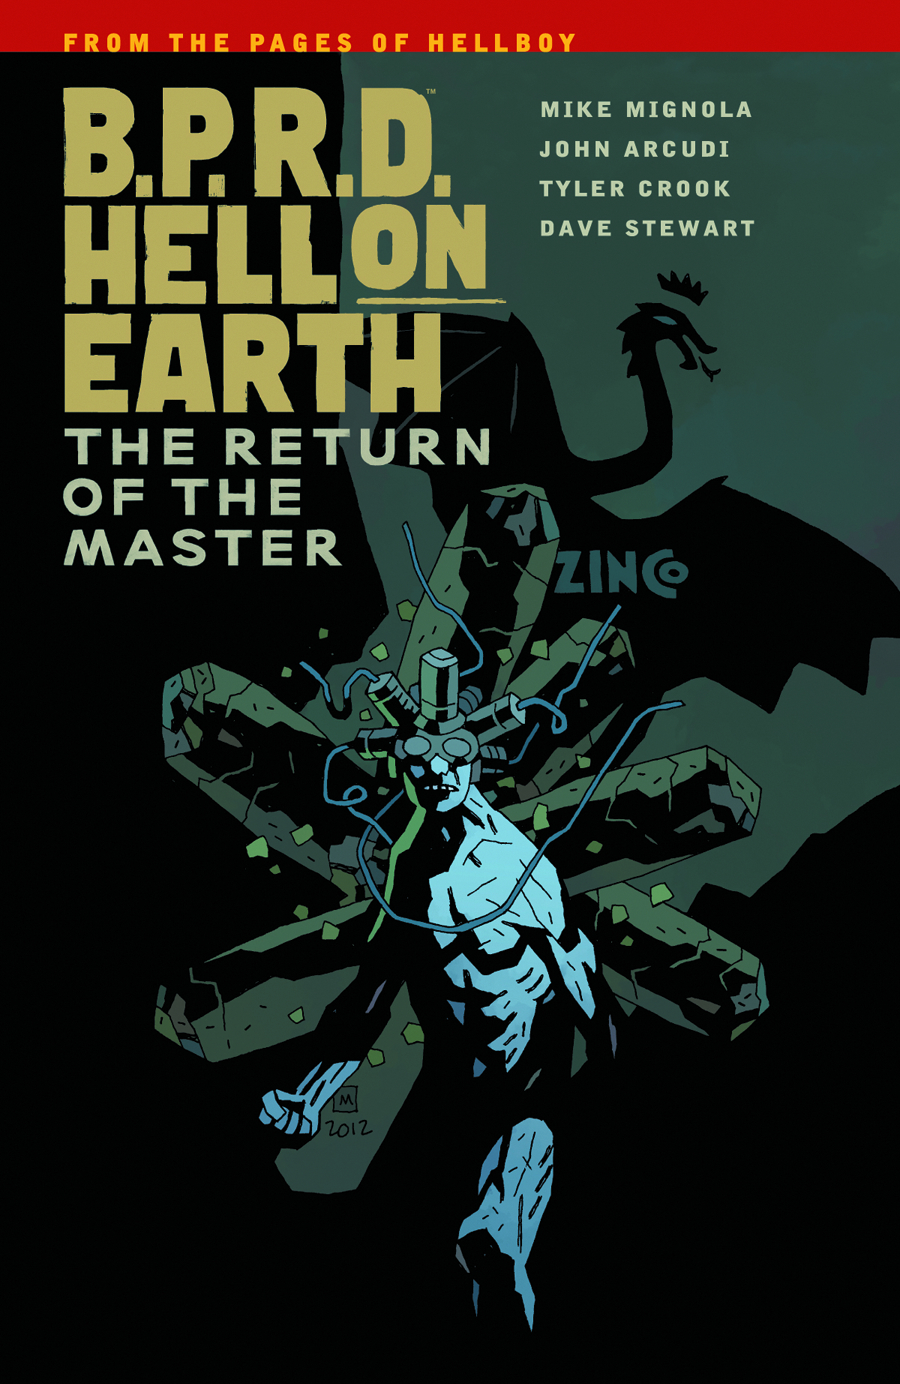 BPRD HELL ON EARTH TP VOL 06 RETURN OF MASTER